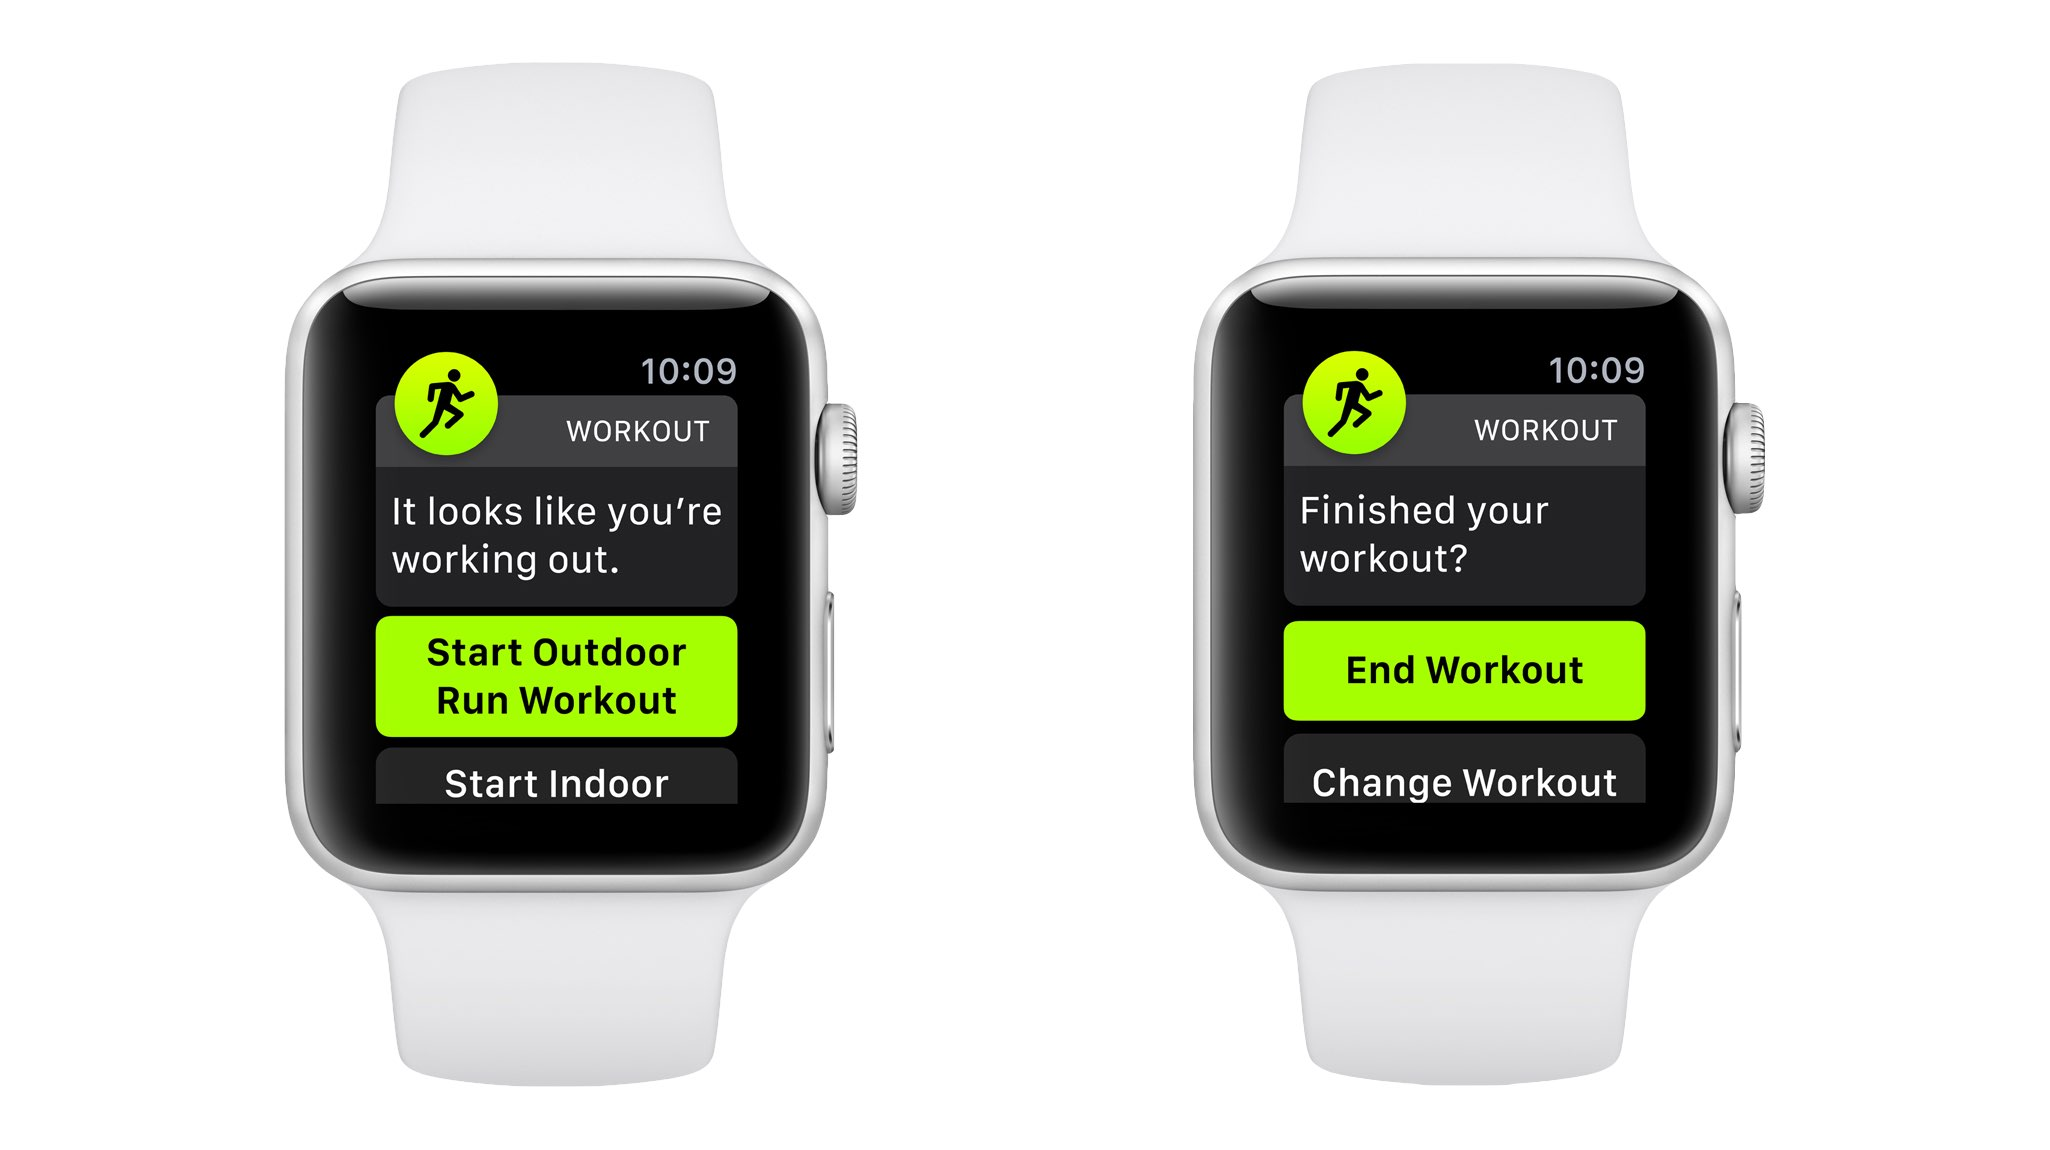 Auto-workout start and end reminders shown on Apple Watch